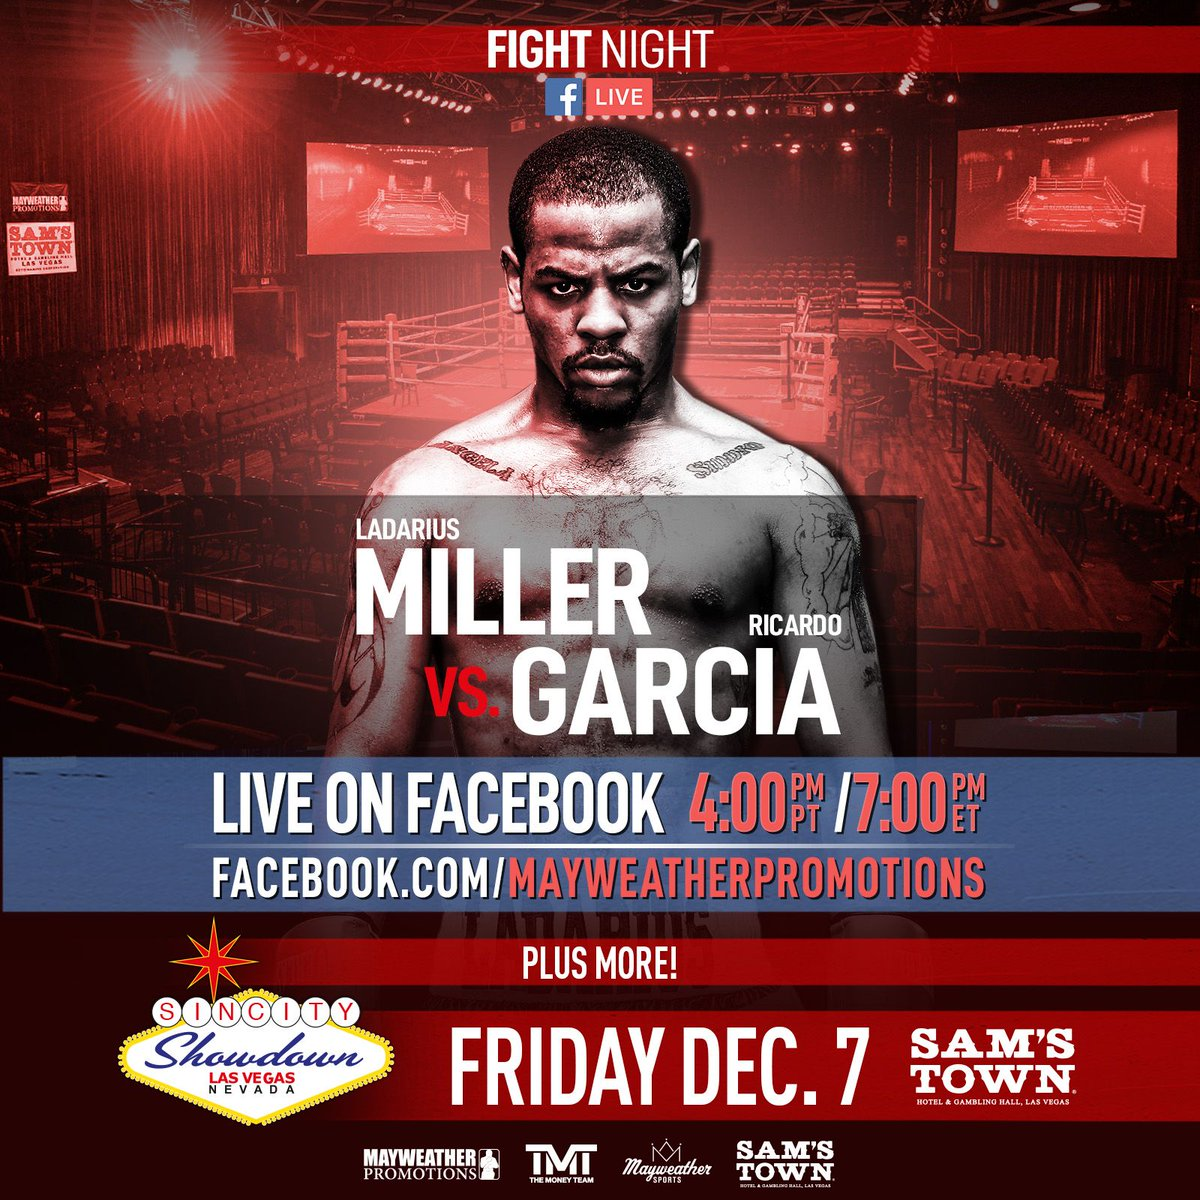 test Twitter Media - It's fight night! Ladarius Miller and Ricardo Garcia are both looking to get the win, but who will come out victorious? Tune in on our FB live or join us at @samstownlv to find out! #MillerGarcia #SinCityShowdown https://t.co/5OkeEMafpt